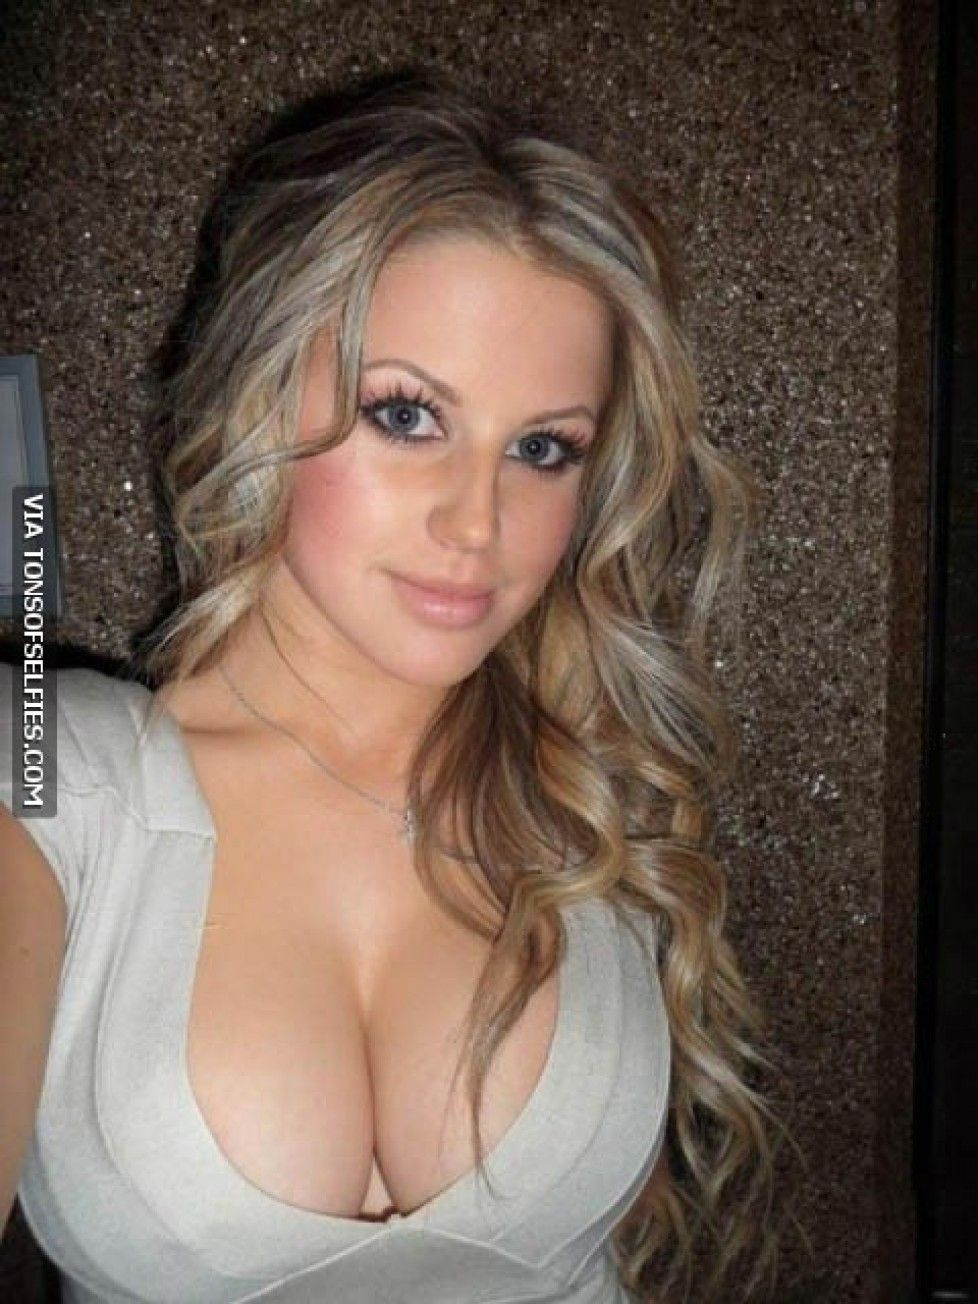 Madison Welch Nude Pics Minimalist is it wrong that i don't even see her face ;) | the real me